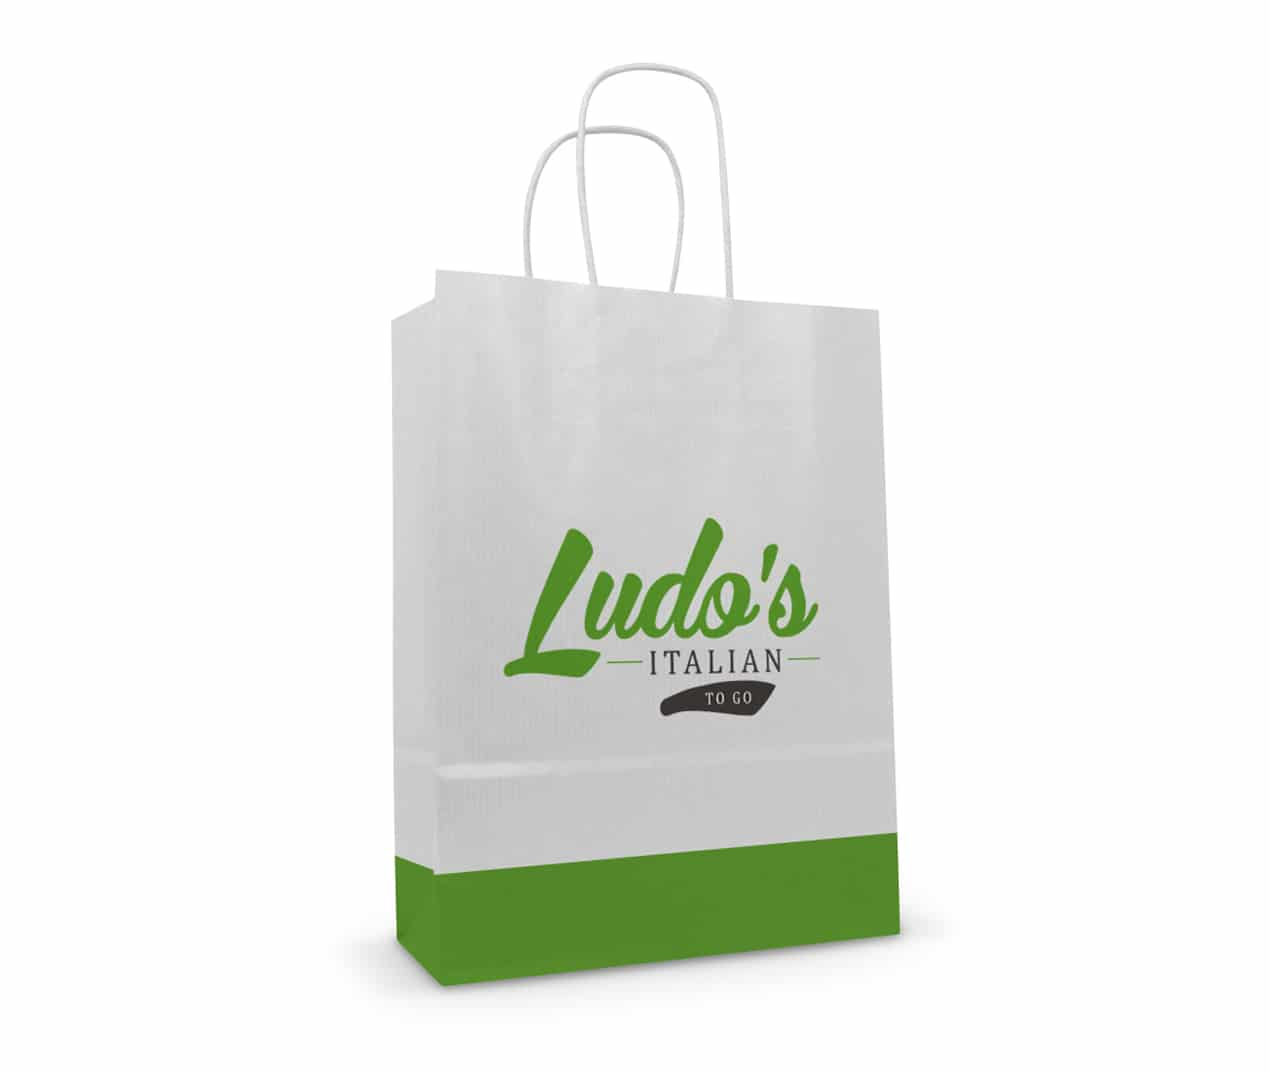 Ludo's Paper Carrier Bag